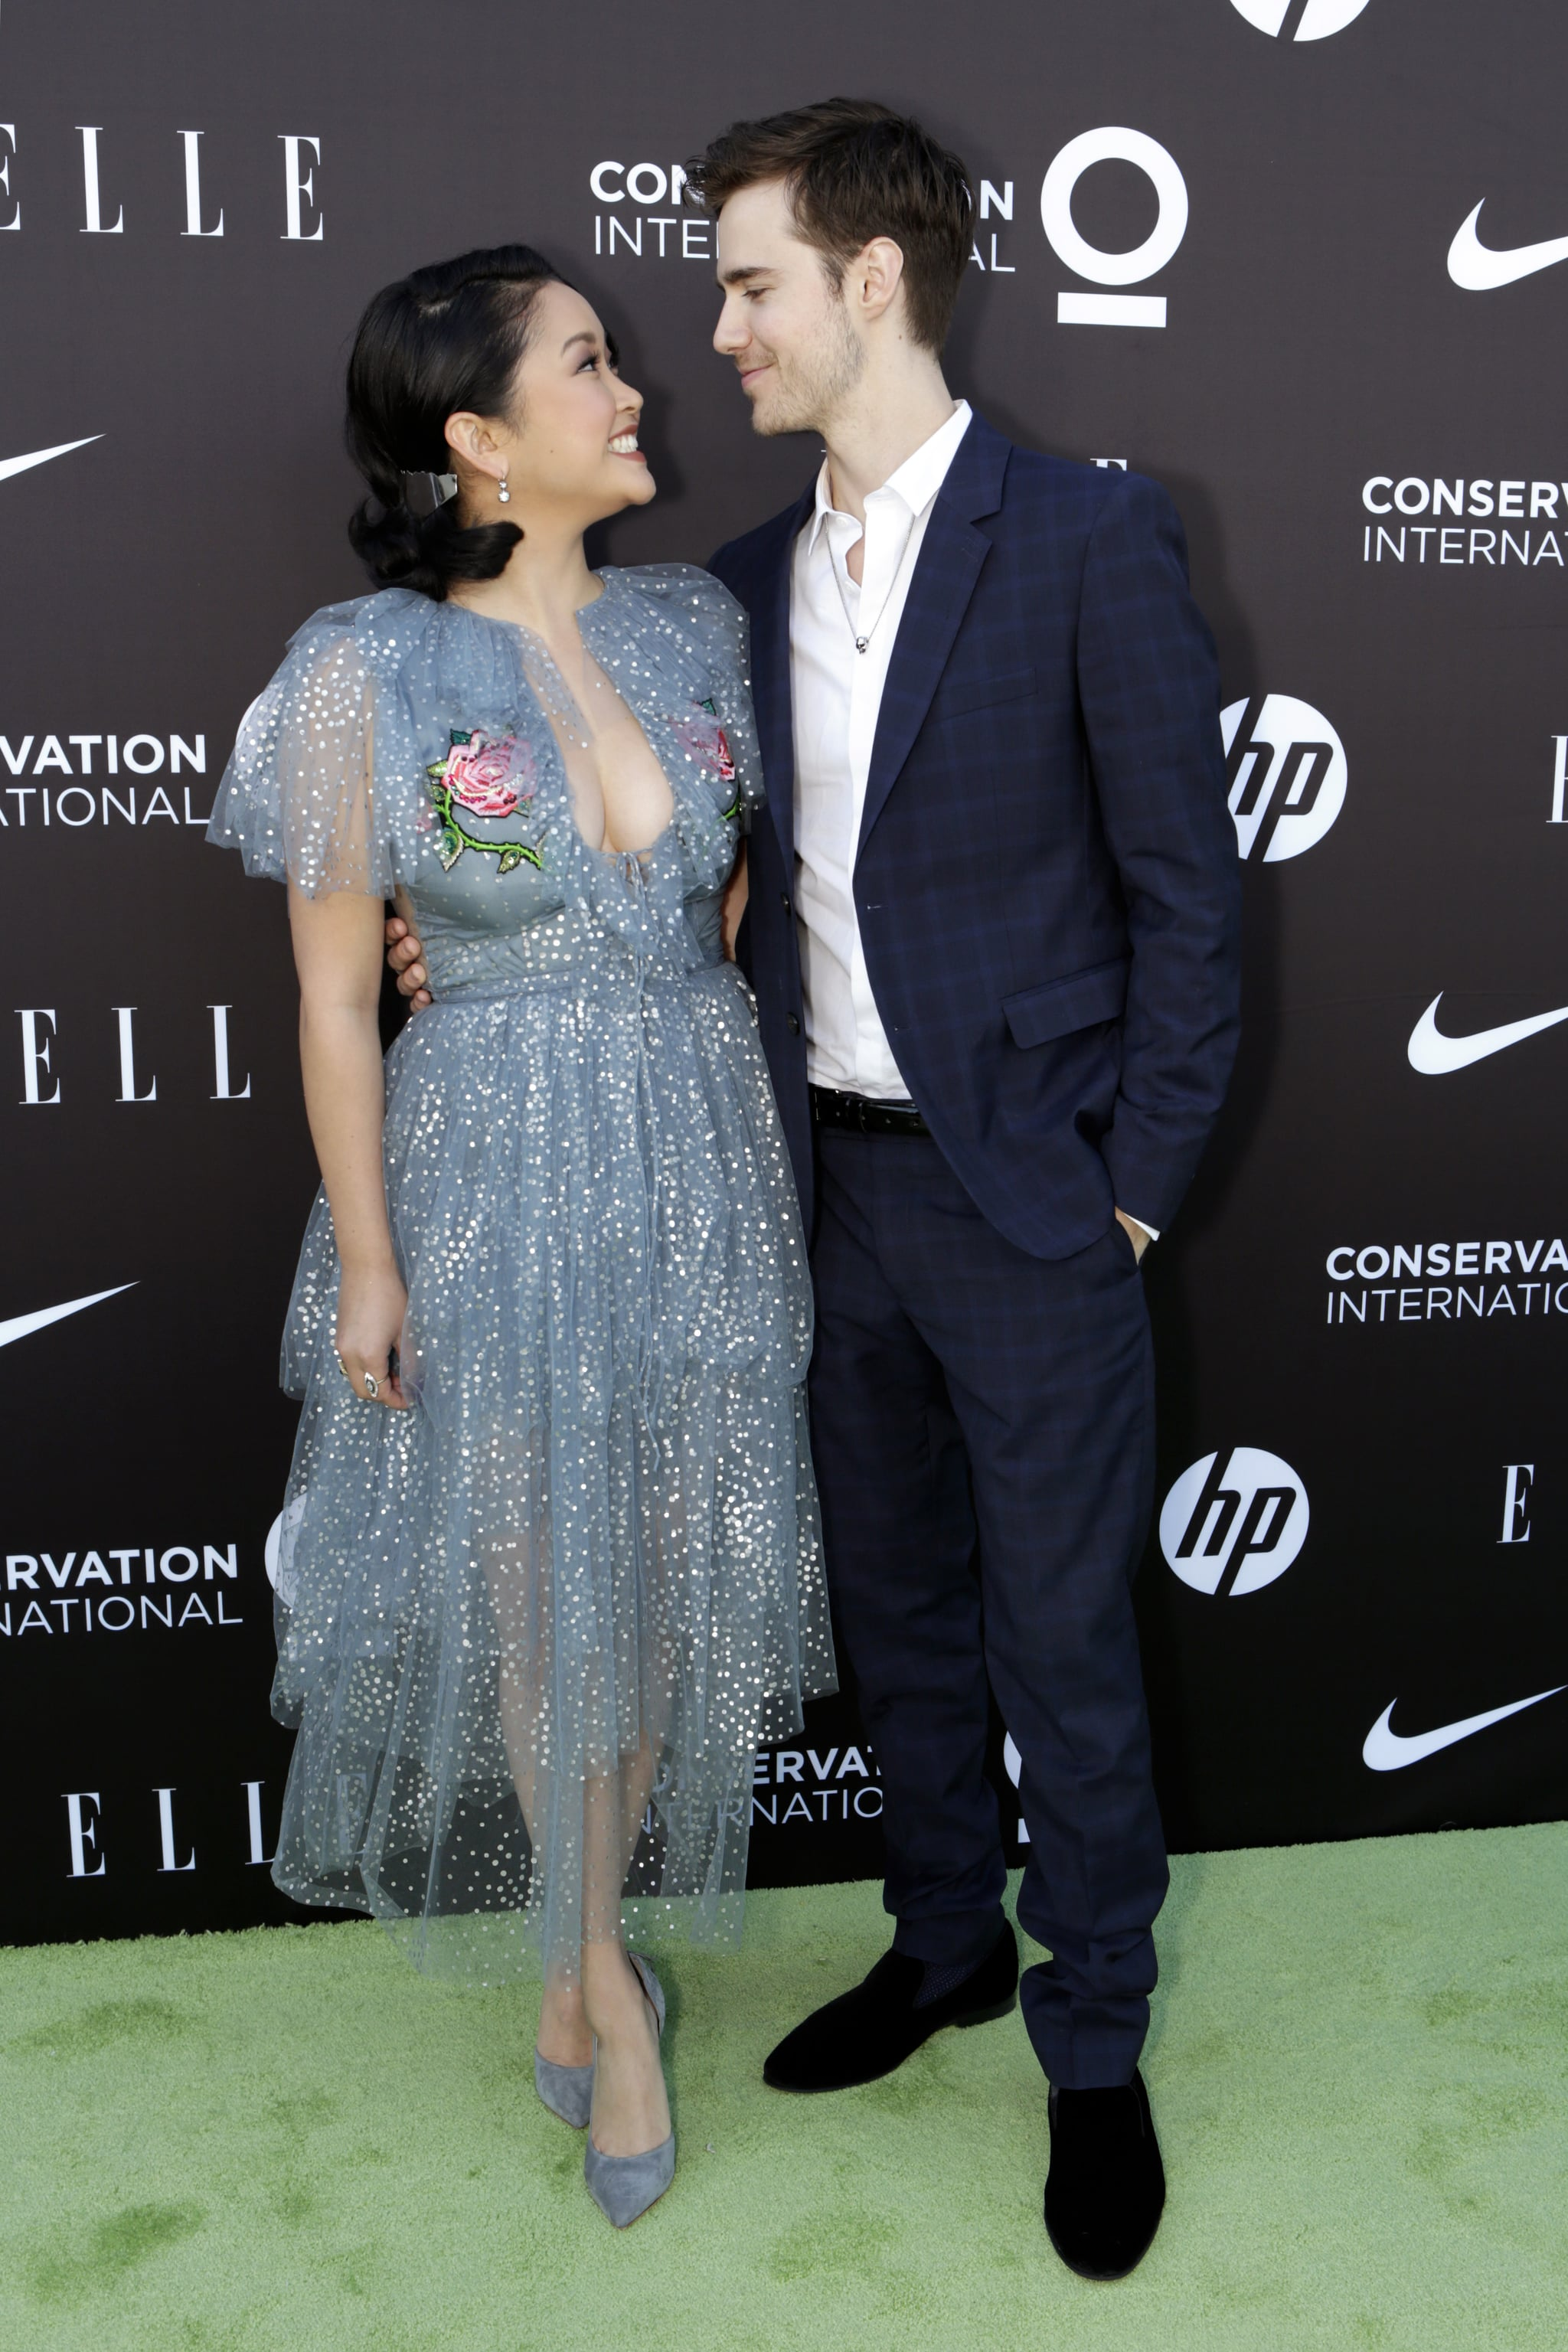 HOLLYWOOD, CALIFORNIA - JUNE 08: (L-R) Lana Condor and Anthony De La Torre attend the Conservation International + ELLE Los Angeles Gala at Milk Studios on June 08, 2019 in Hollywood, California. (Photo by David Poller Photography/Getty Images for Conservation International)